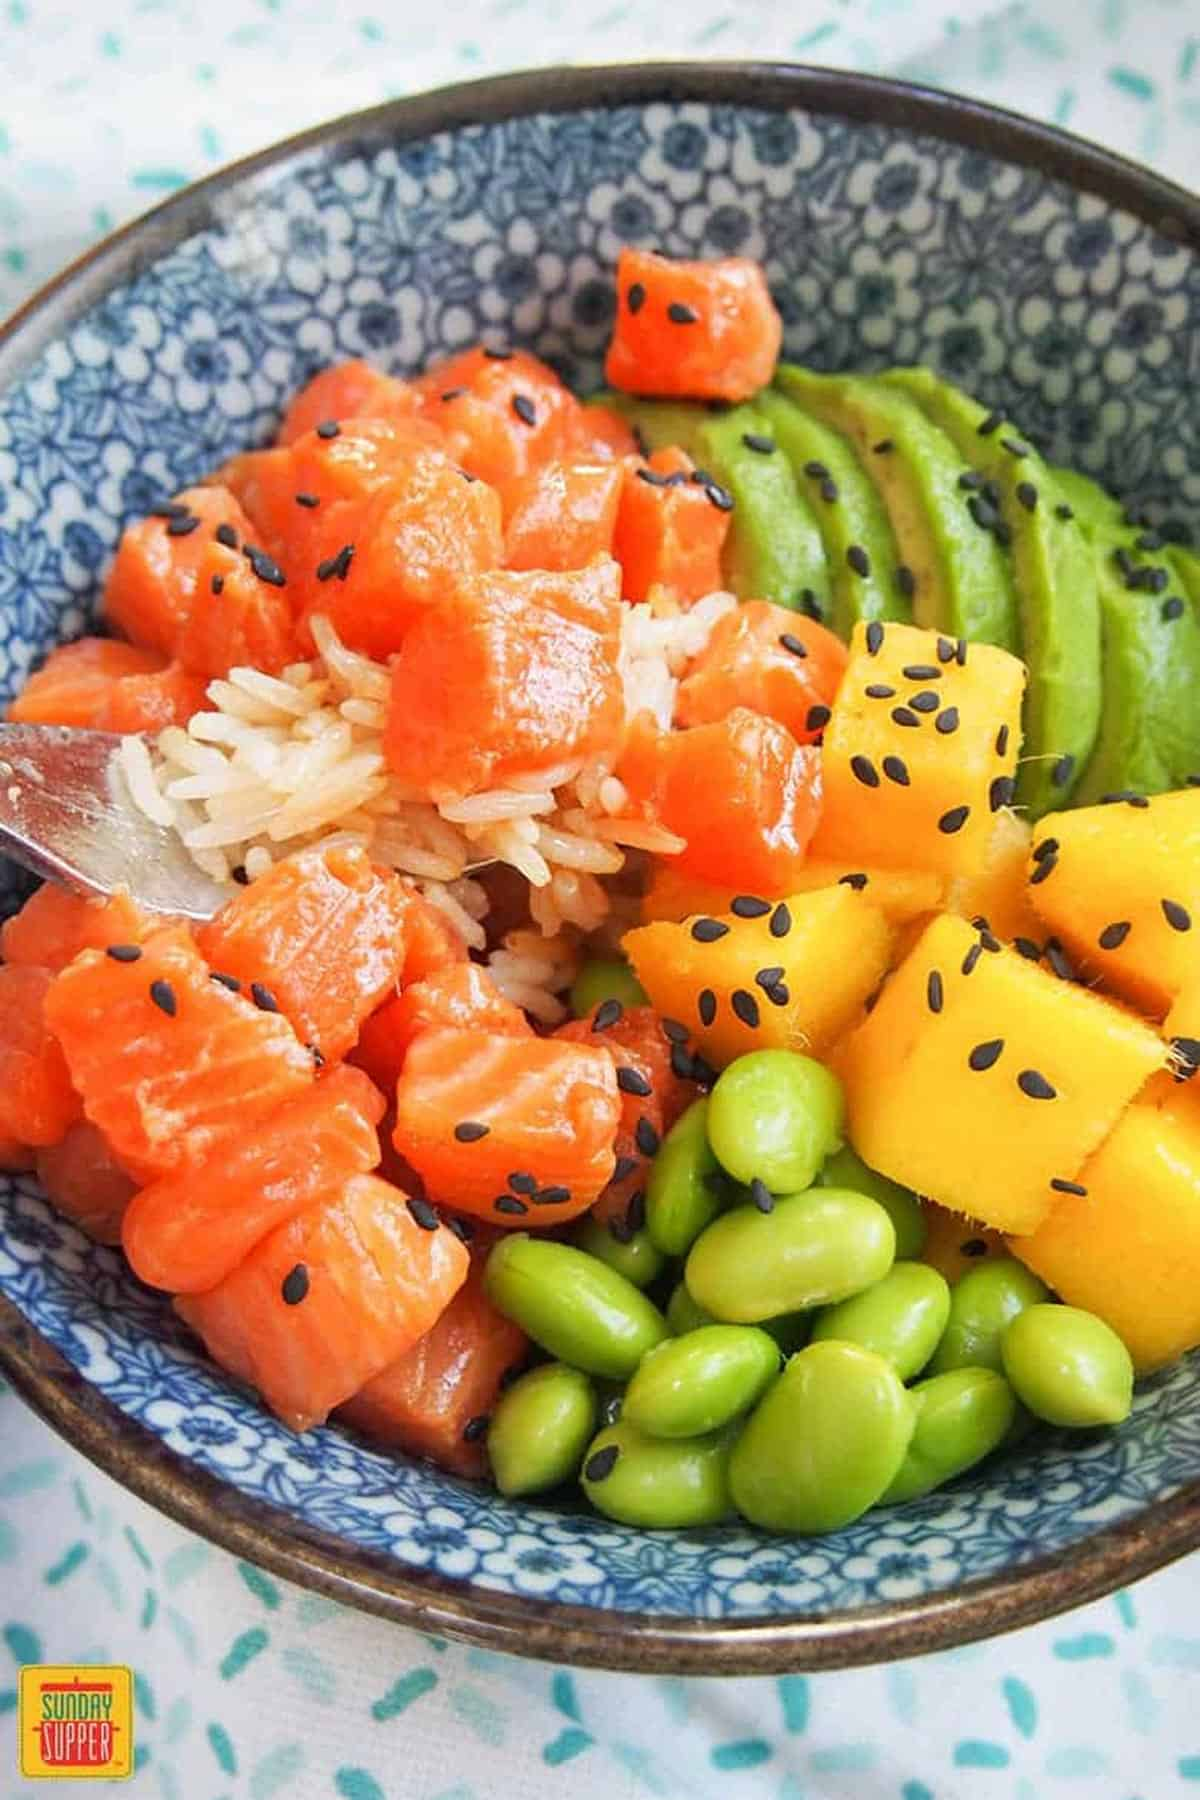 A forkful of diced salmon in a salmon poke bowl next to mango, edamame, and sliced avocado